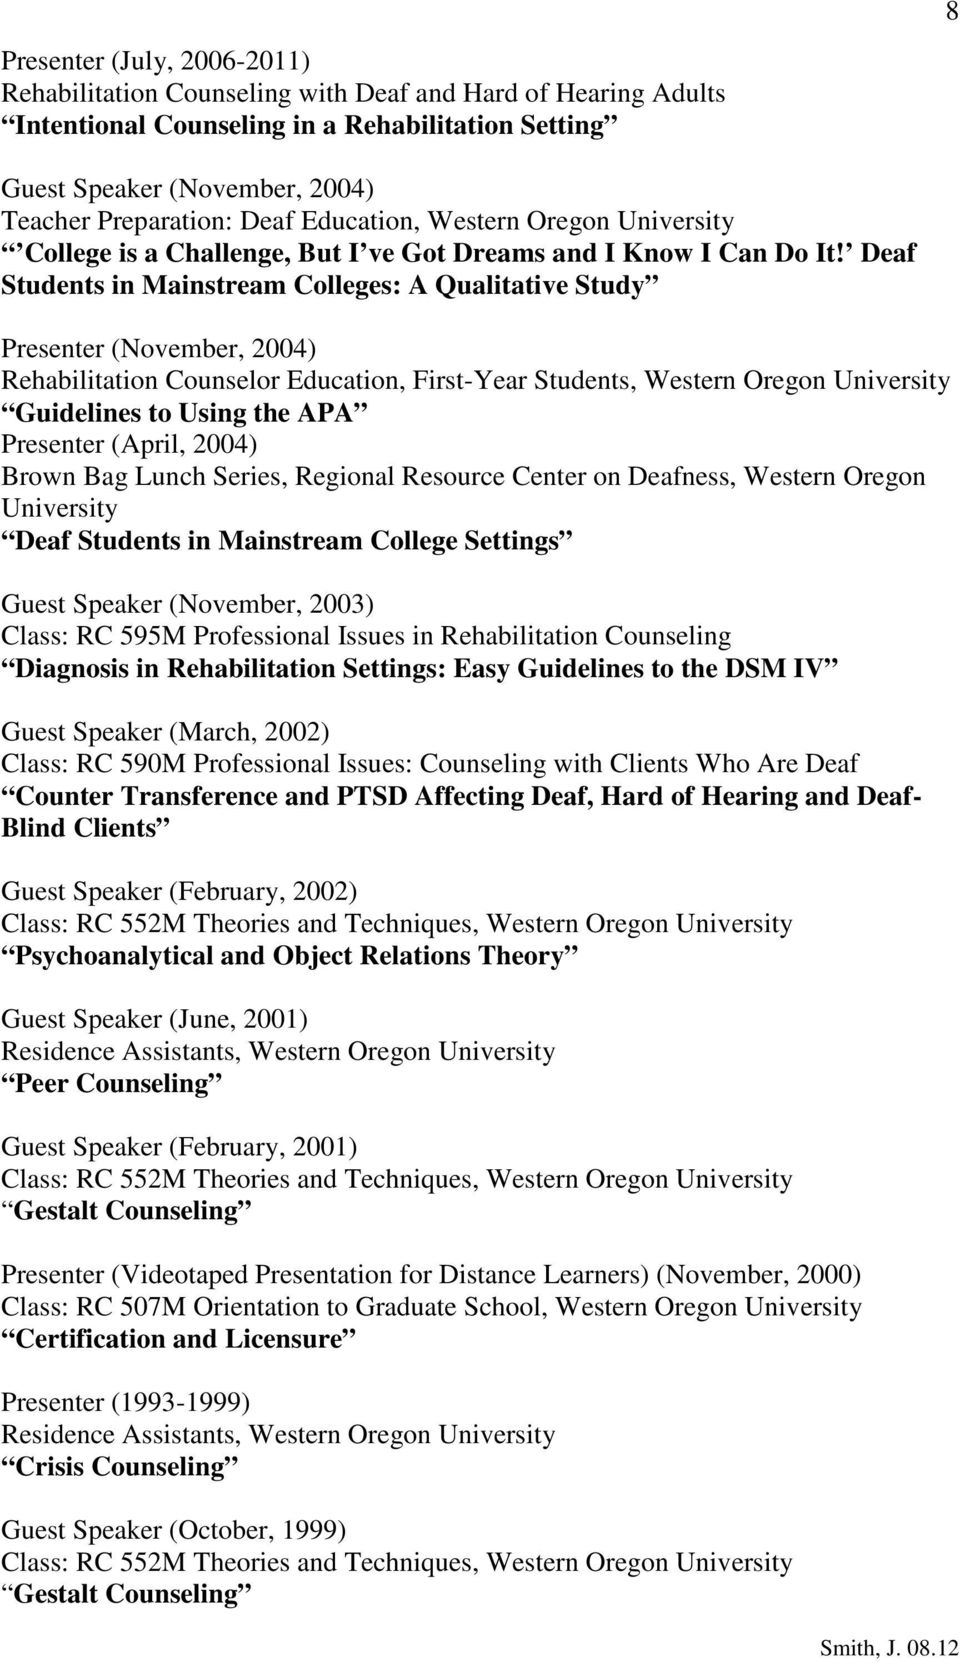 Deaf Students in Mainstream Colleges: A Qualitative Study Presenter (November, 2004) Rehabilitation Counselor Education, First-Year Students, Guidelines to Using the APA Presenter (April, 2004) Brown